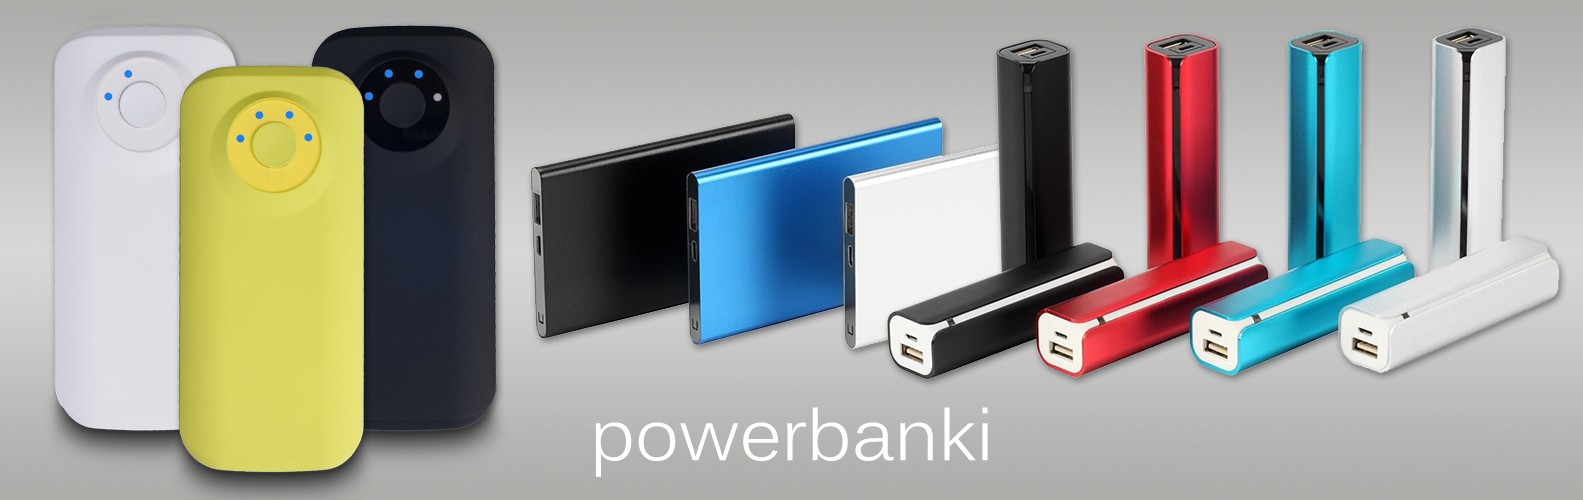 powerbanki